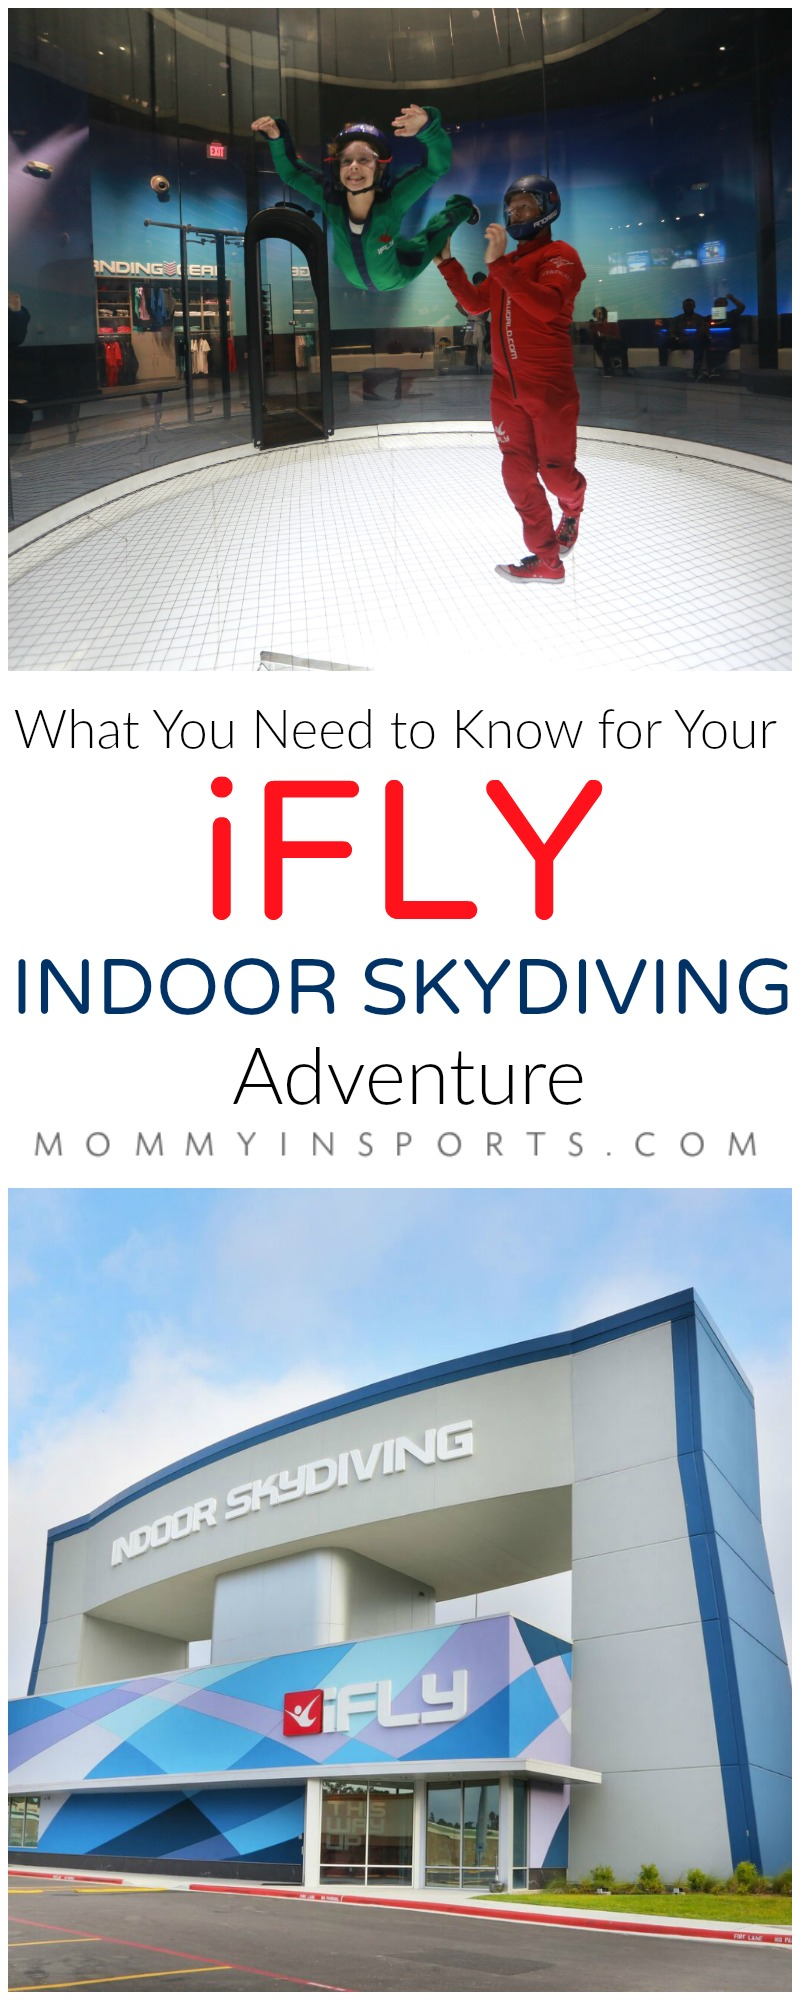 What You Need to Know for Your iFLY Indoor Skydiving